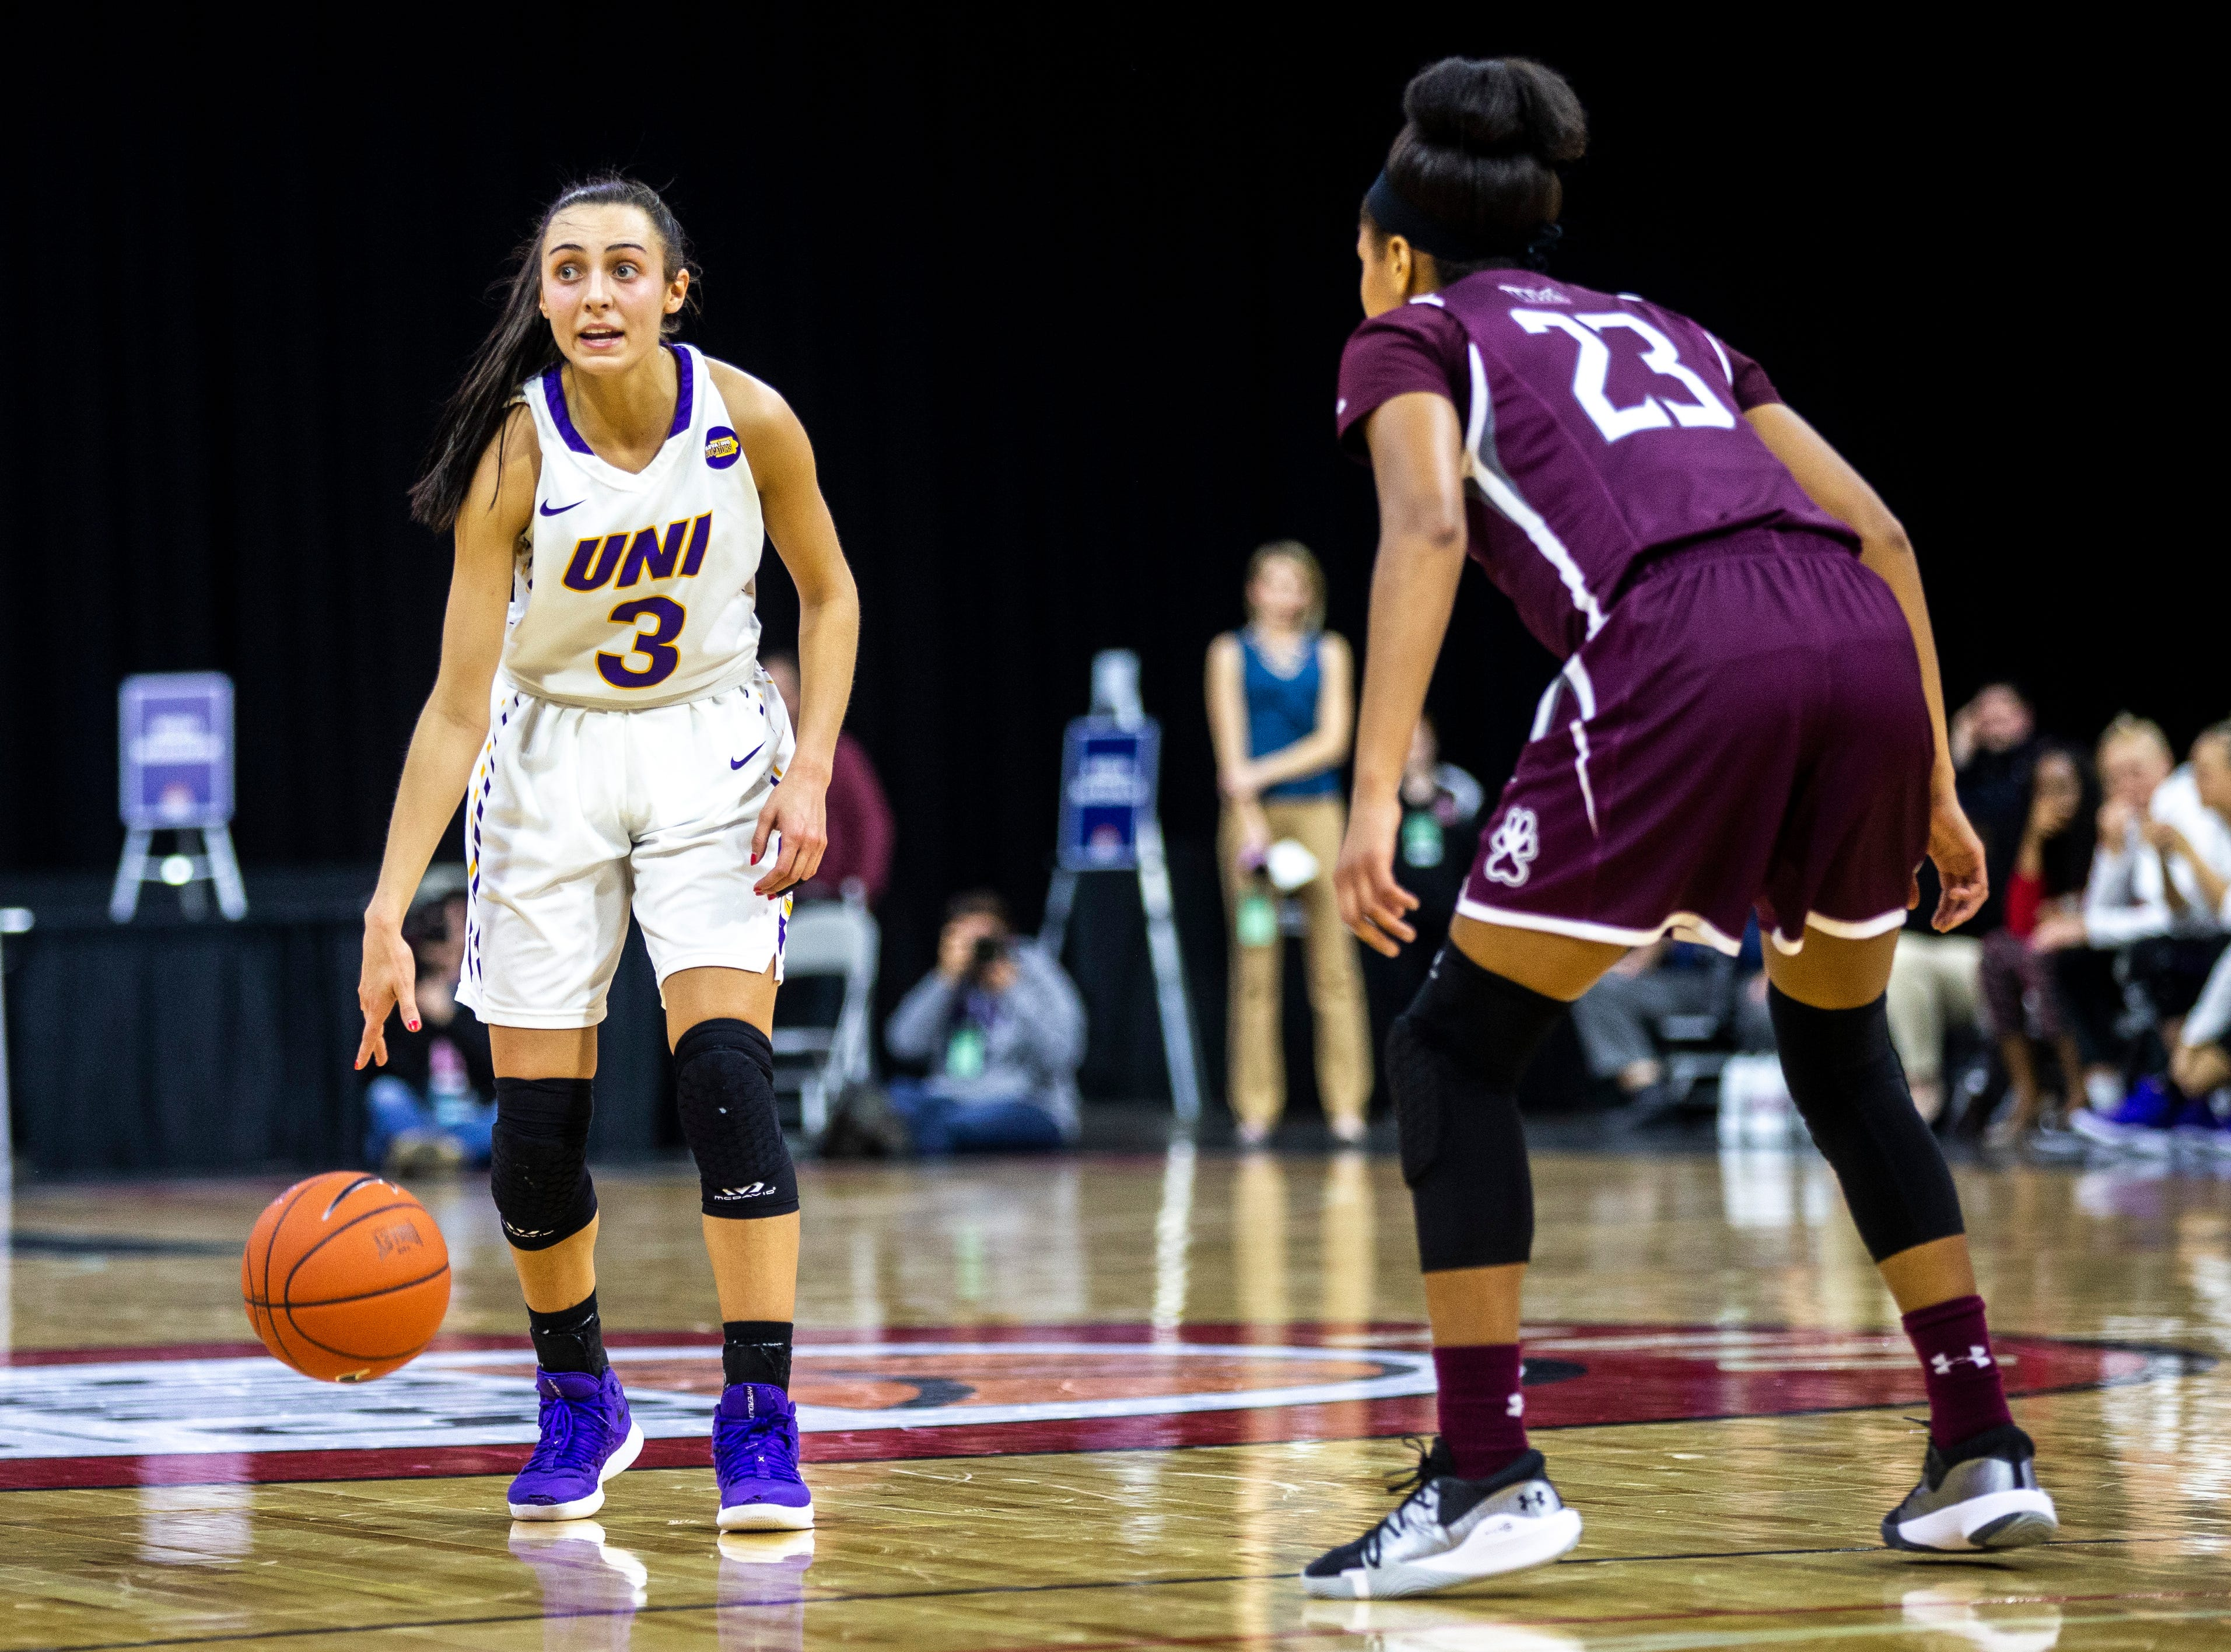 Northern Iowa guard Karli Rucker (3) dribbles while Southern Illinois guard Kristen Nelson (23) defends during a NCAA Missouri Valley Conference women's basketball quarterfinal tournament game, Friday, March 15, 2019, at the TaxSlayer Center in Moline, Illinois.